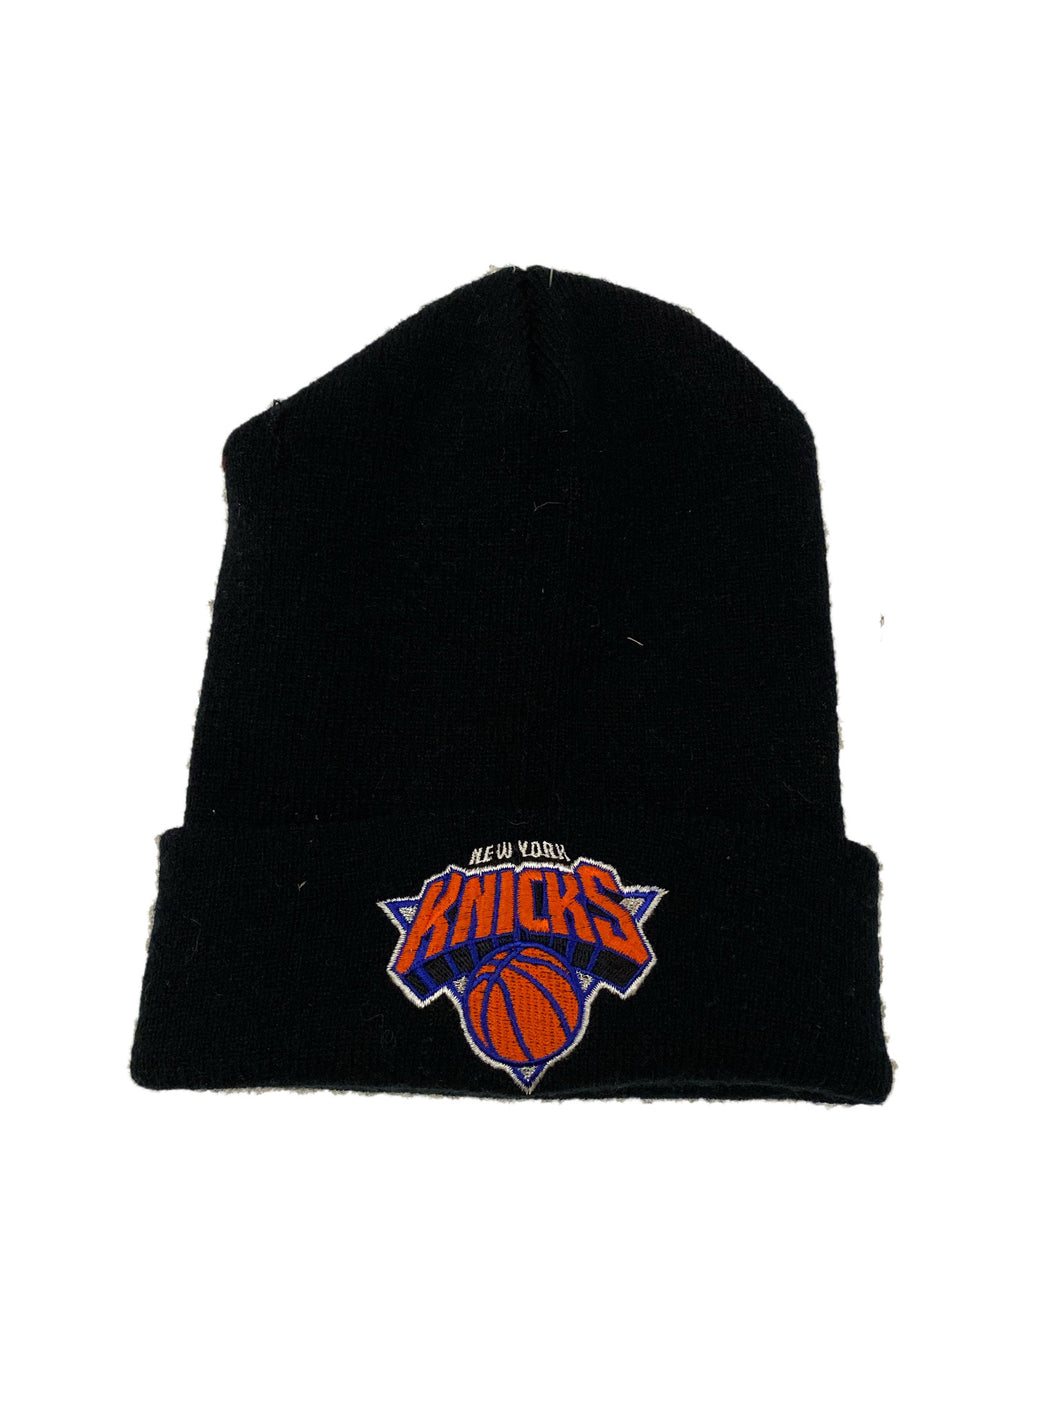 New York Knicks Beanie